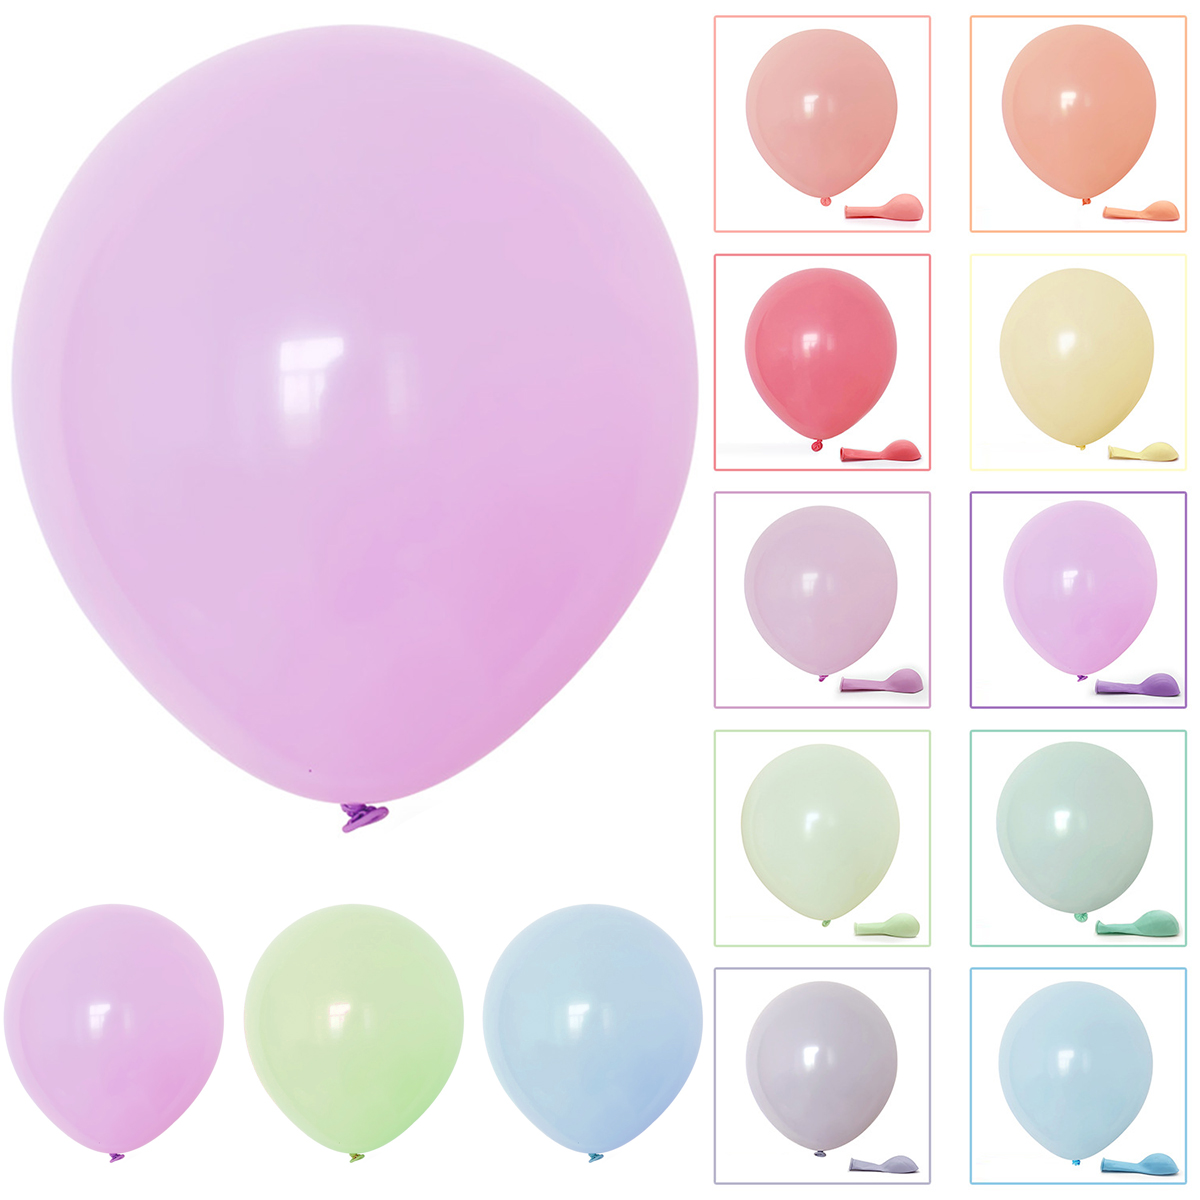 100pcs Mixed Color Round Balloons Macaron Candy Colored Latex Balloon Birthday Wedding Engagement Festival Family Party Decor